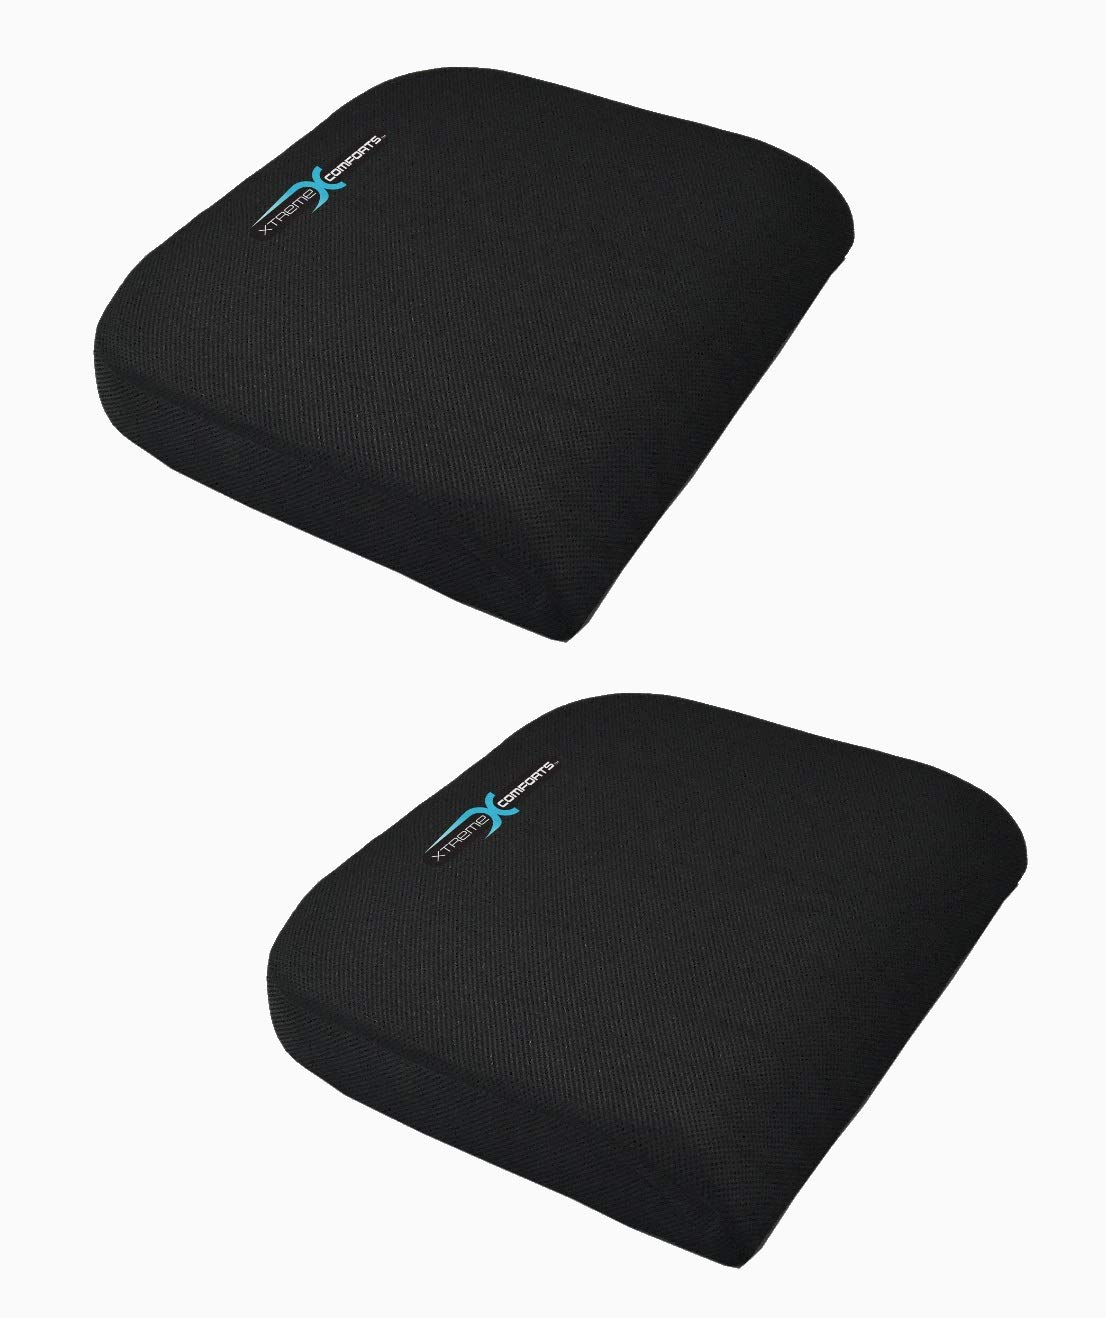 Xtreme Comforts Large Seat Cushion with Carry Handle and Anti Slip Bottom Gives Relief from Back Pain (2 Pack) by Xtreme Comforts (Image #1)